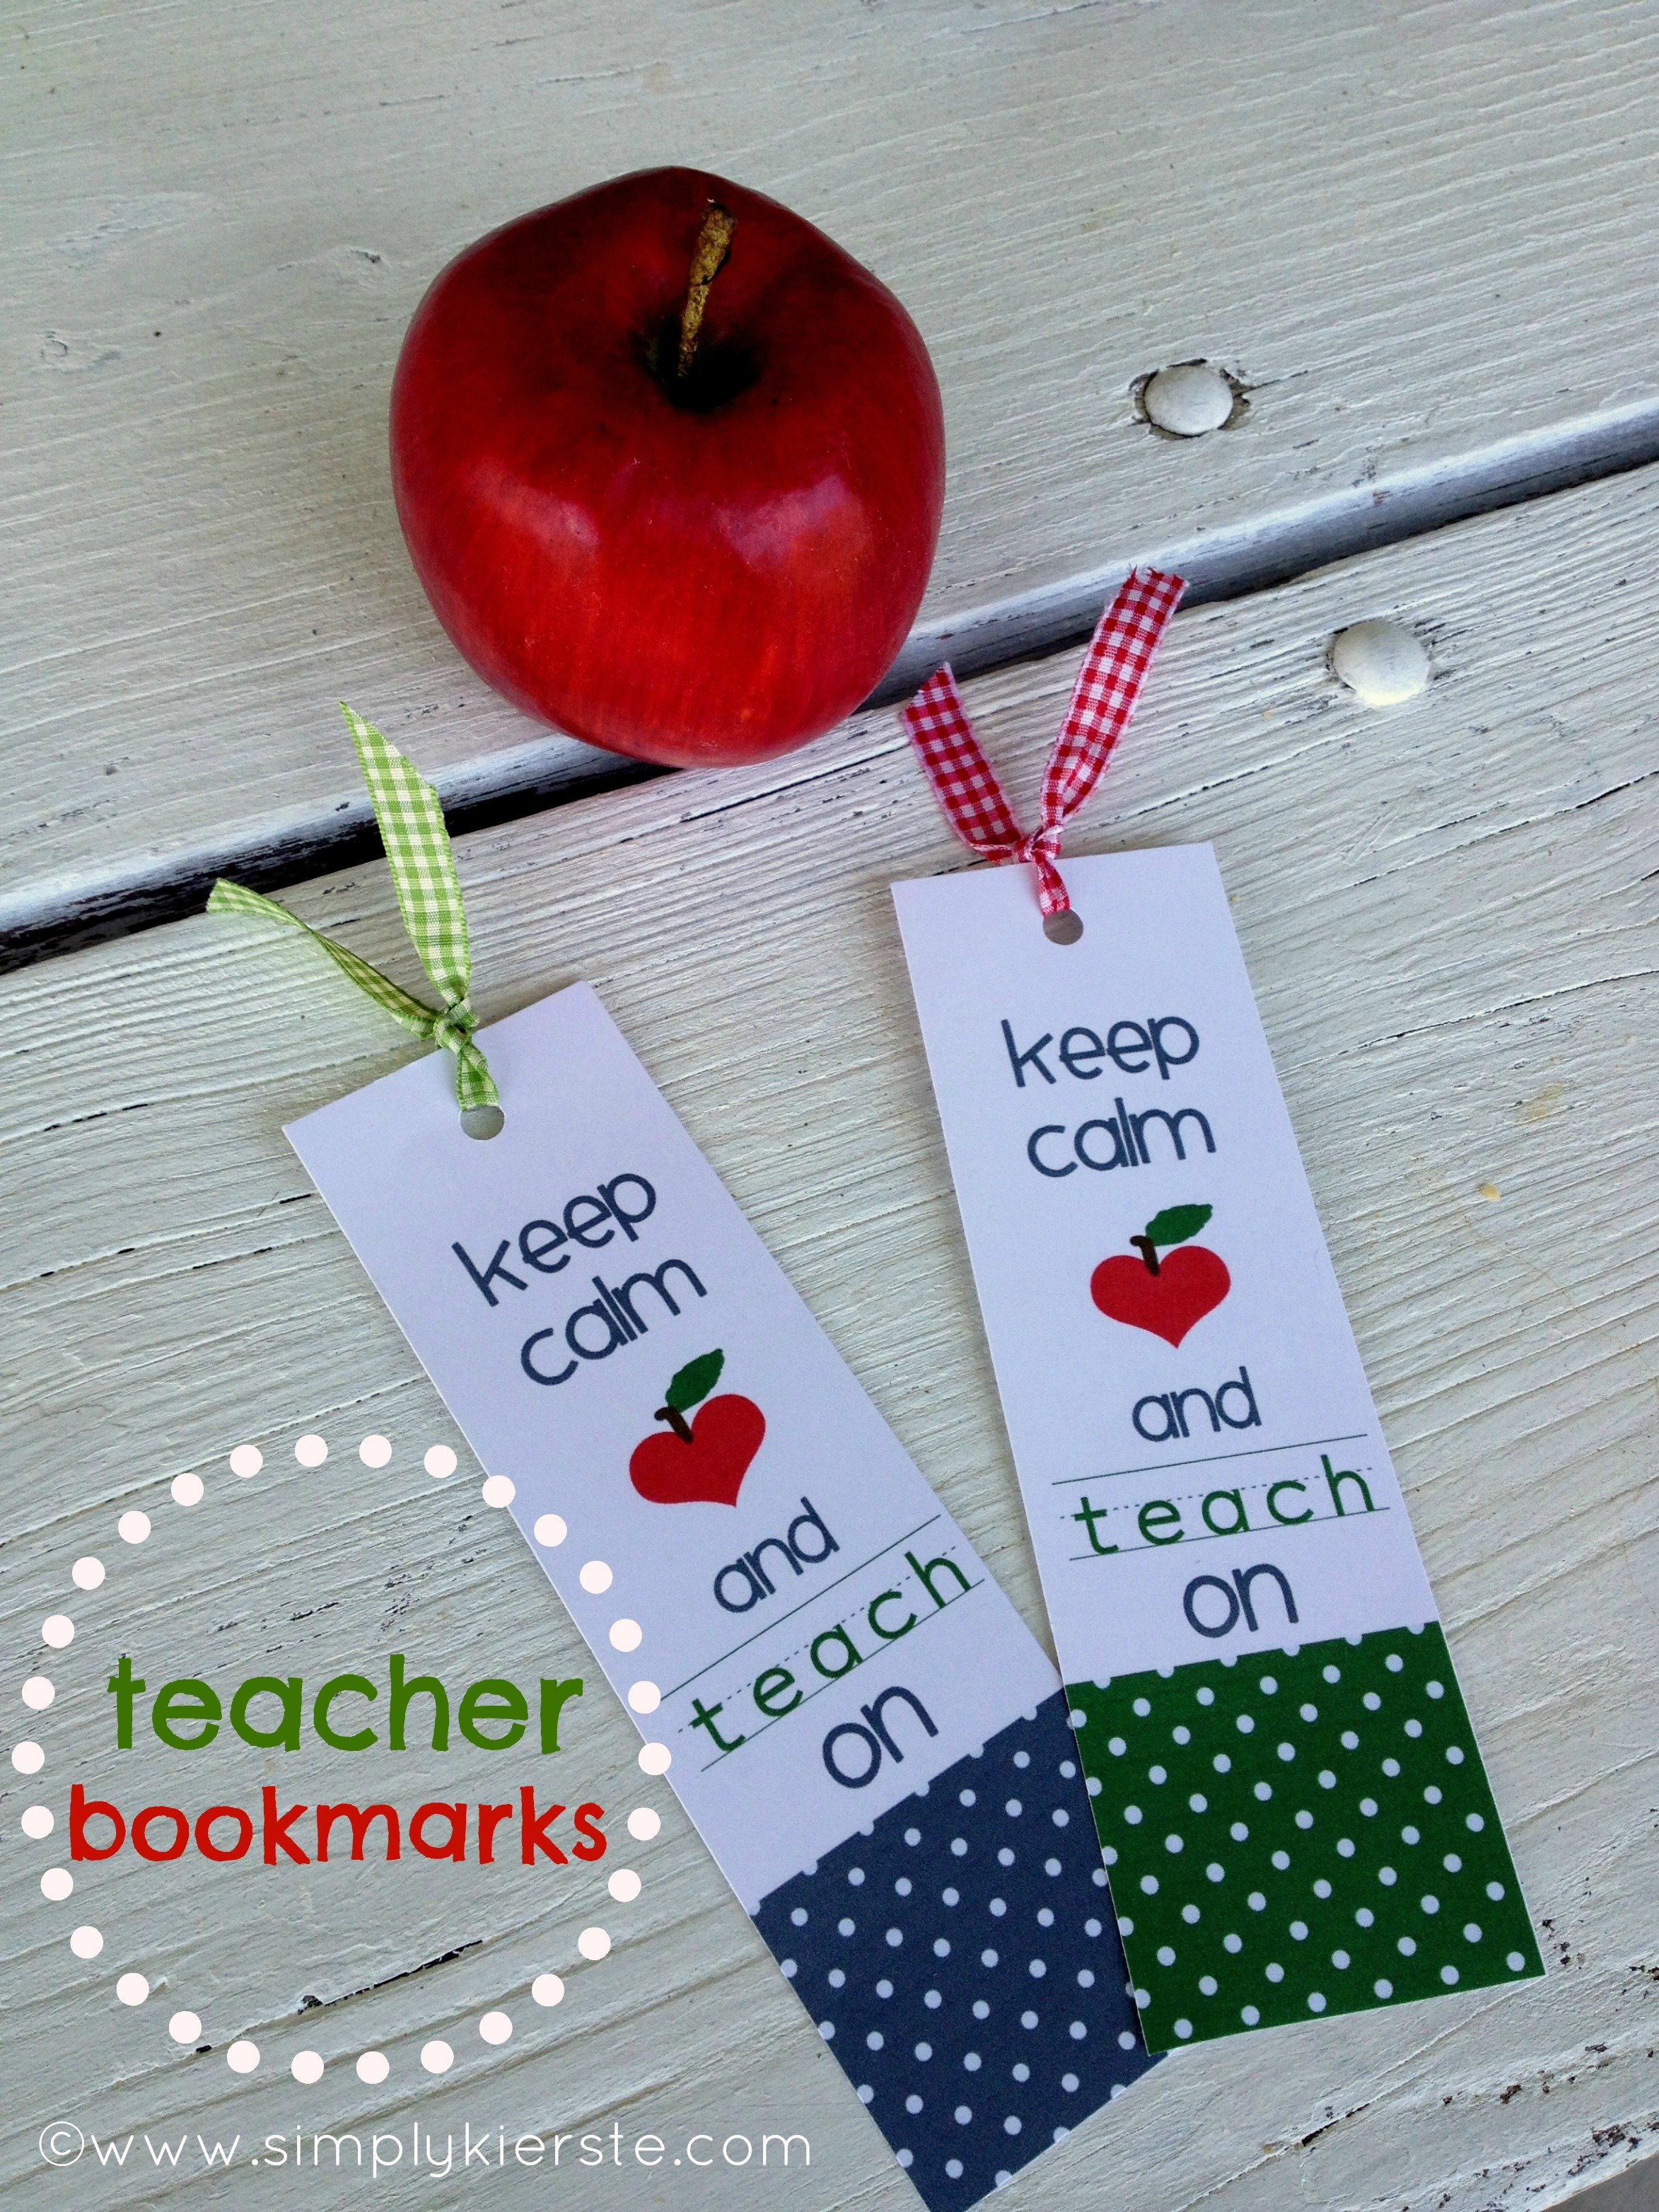 Beautiful Keep Calm and Carry OnTeacher Bookmarks }| simplykierste.com MM01